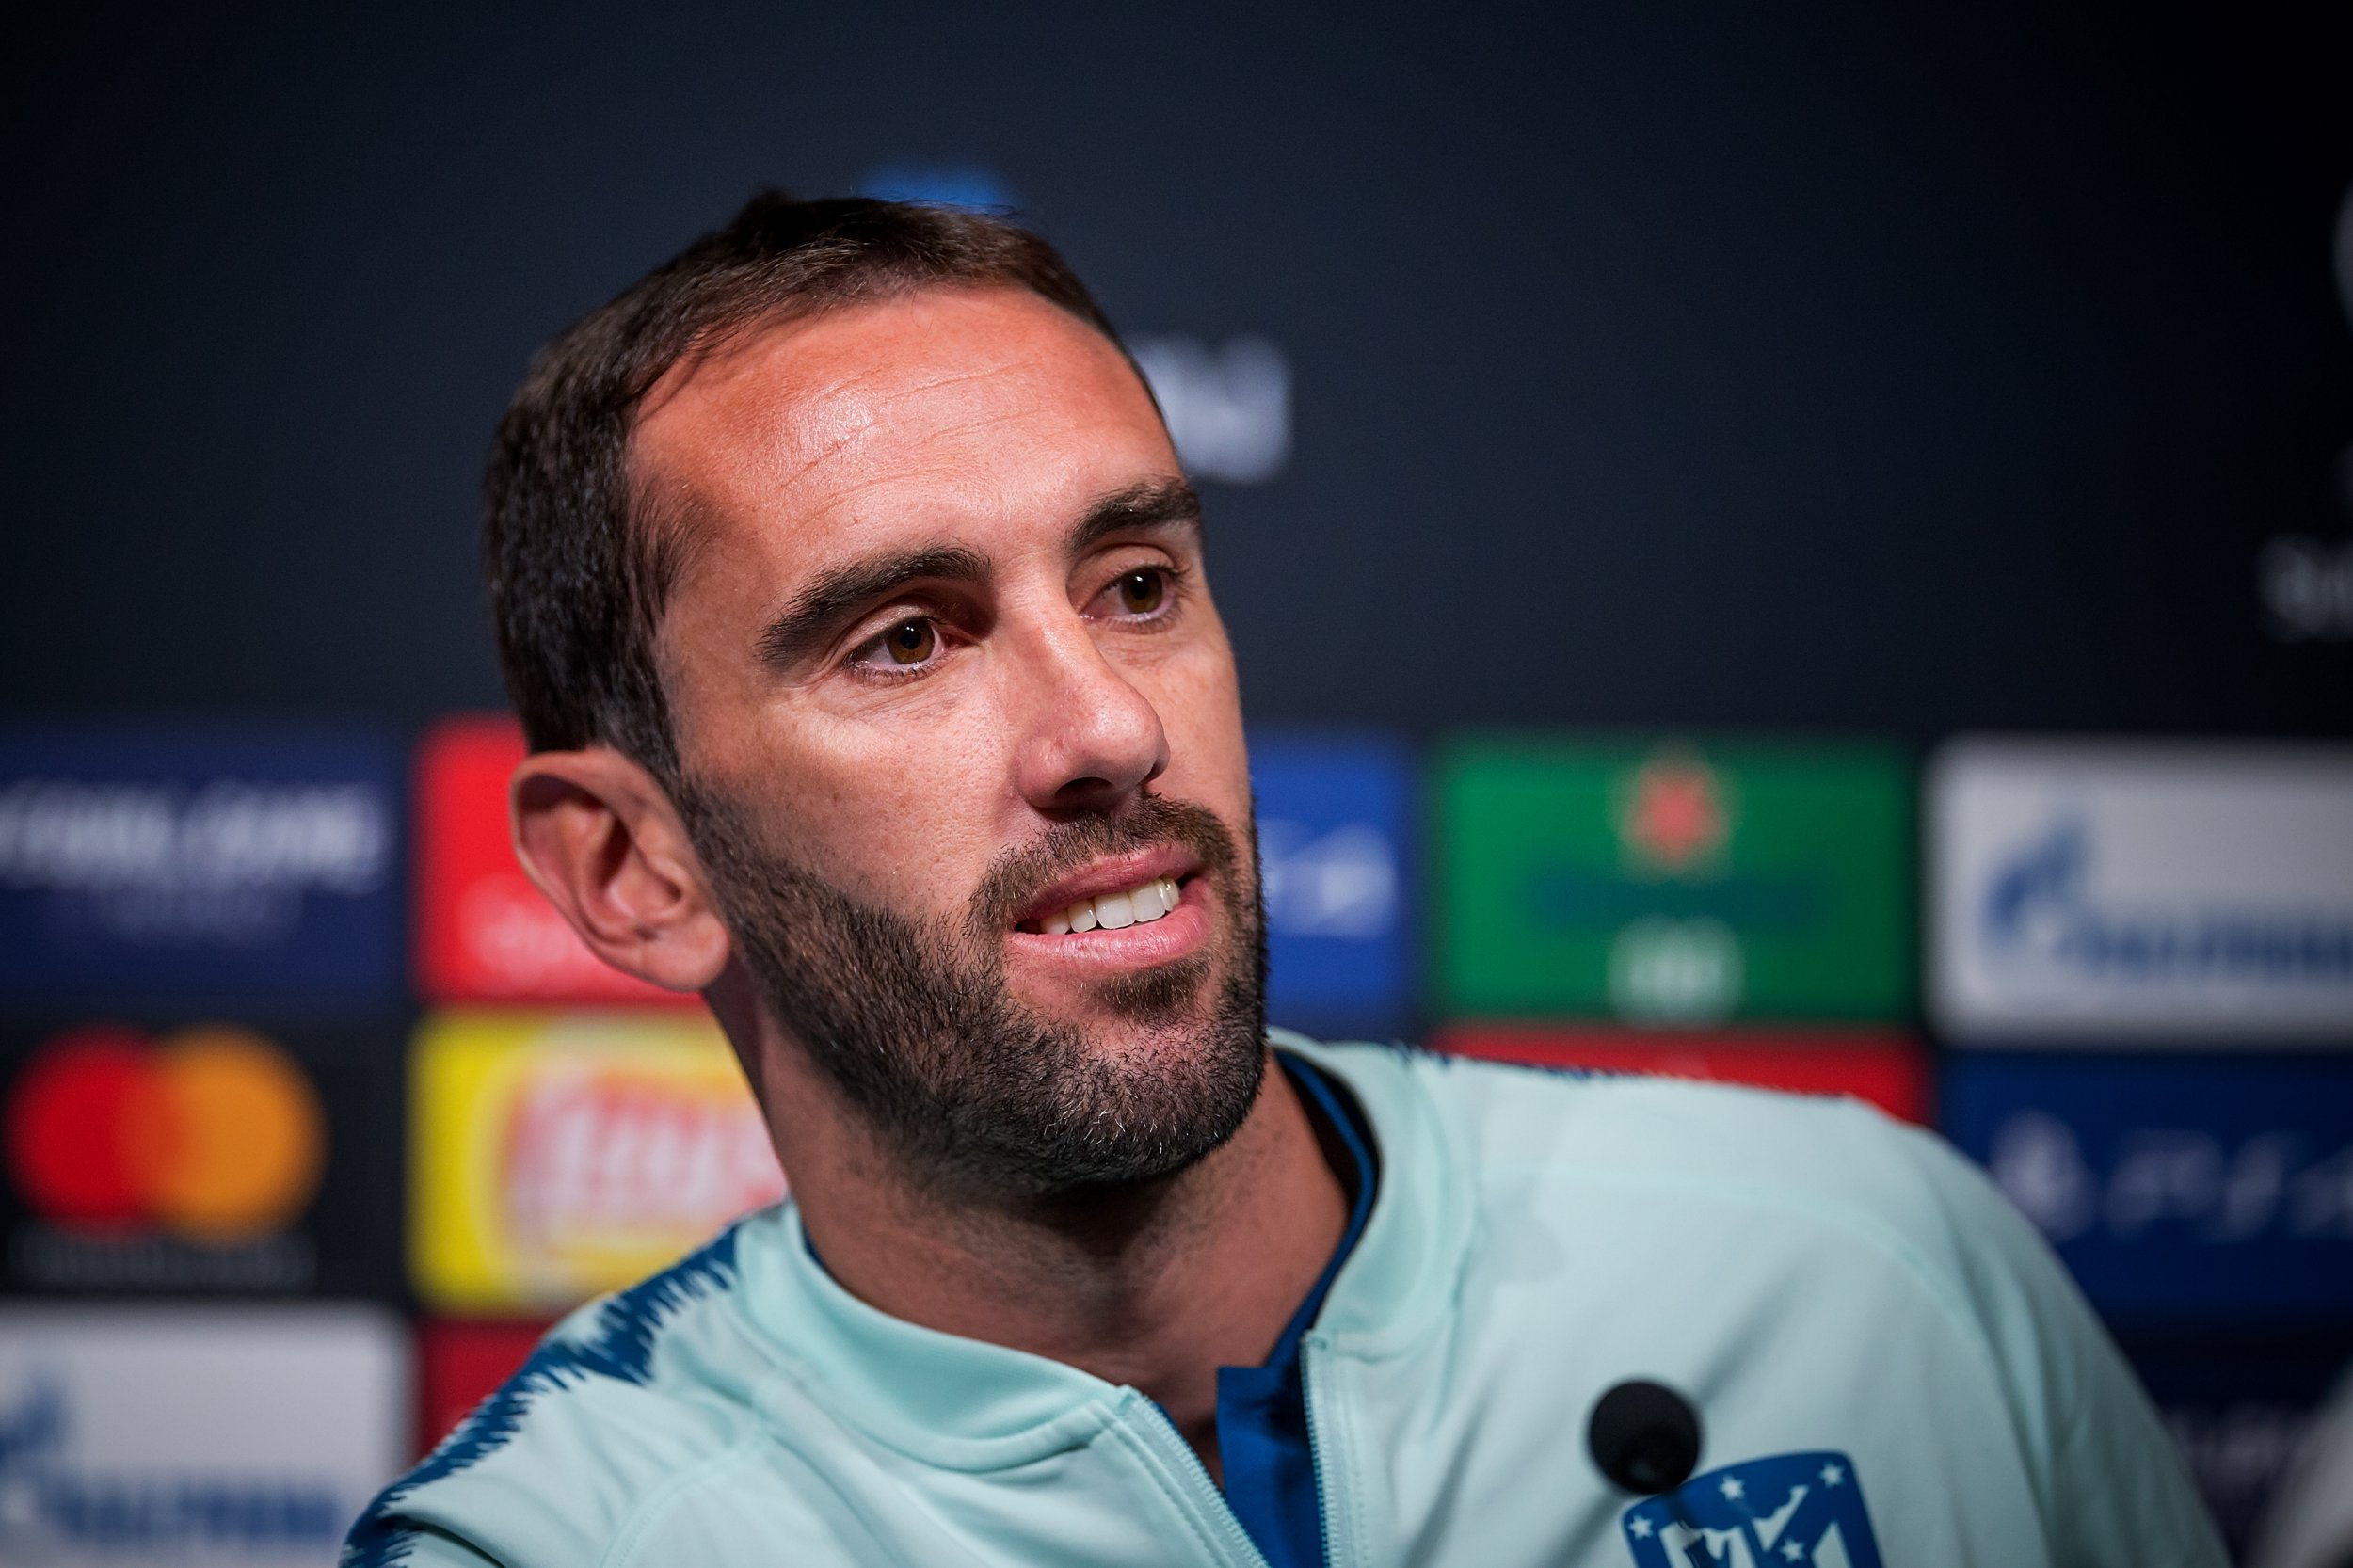 TALLINN, ESTONIA - AUGUST 14: Diego Godin speaks during Atletico Madrid press conference at A. le Coq Arena ahead of the UEFA Super Cup on August 14, 2018 in Tallinn, Estonia. (Photo by Joosep Martinson - UEFA/UEFA via Getty Images)